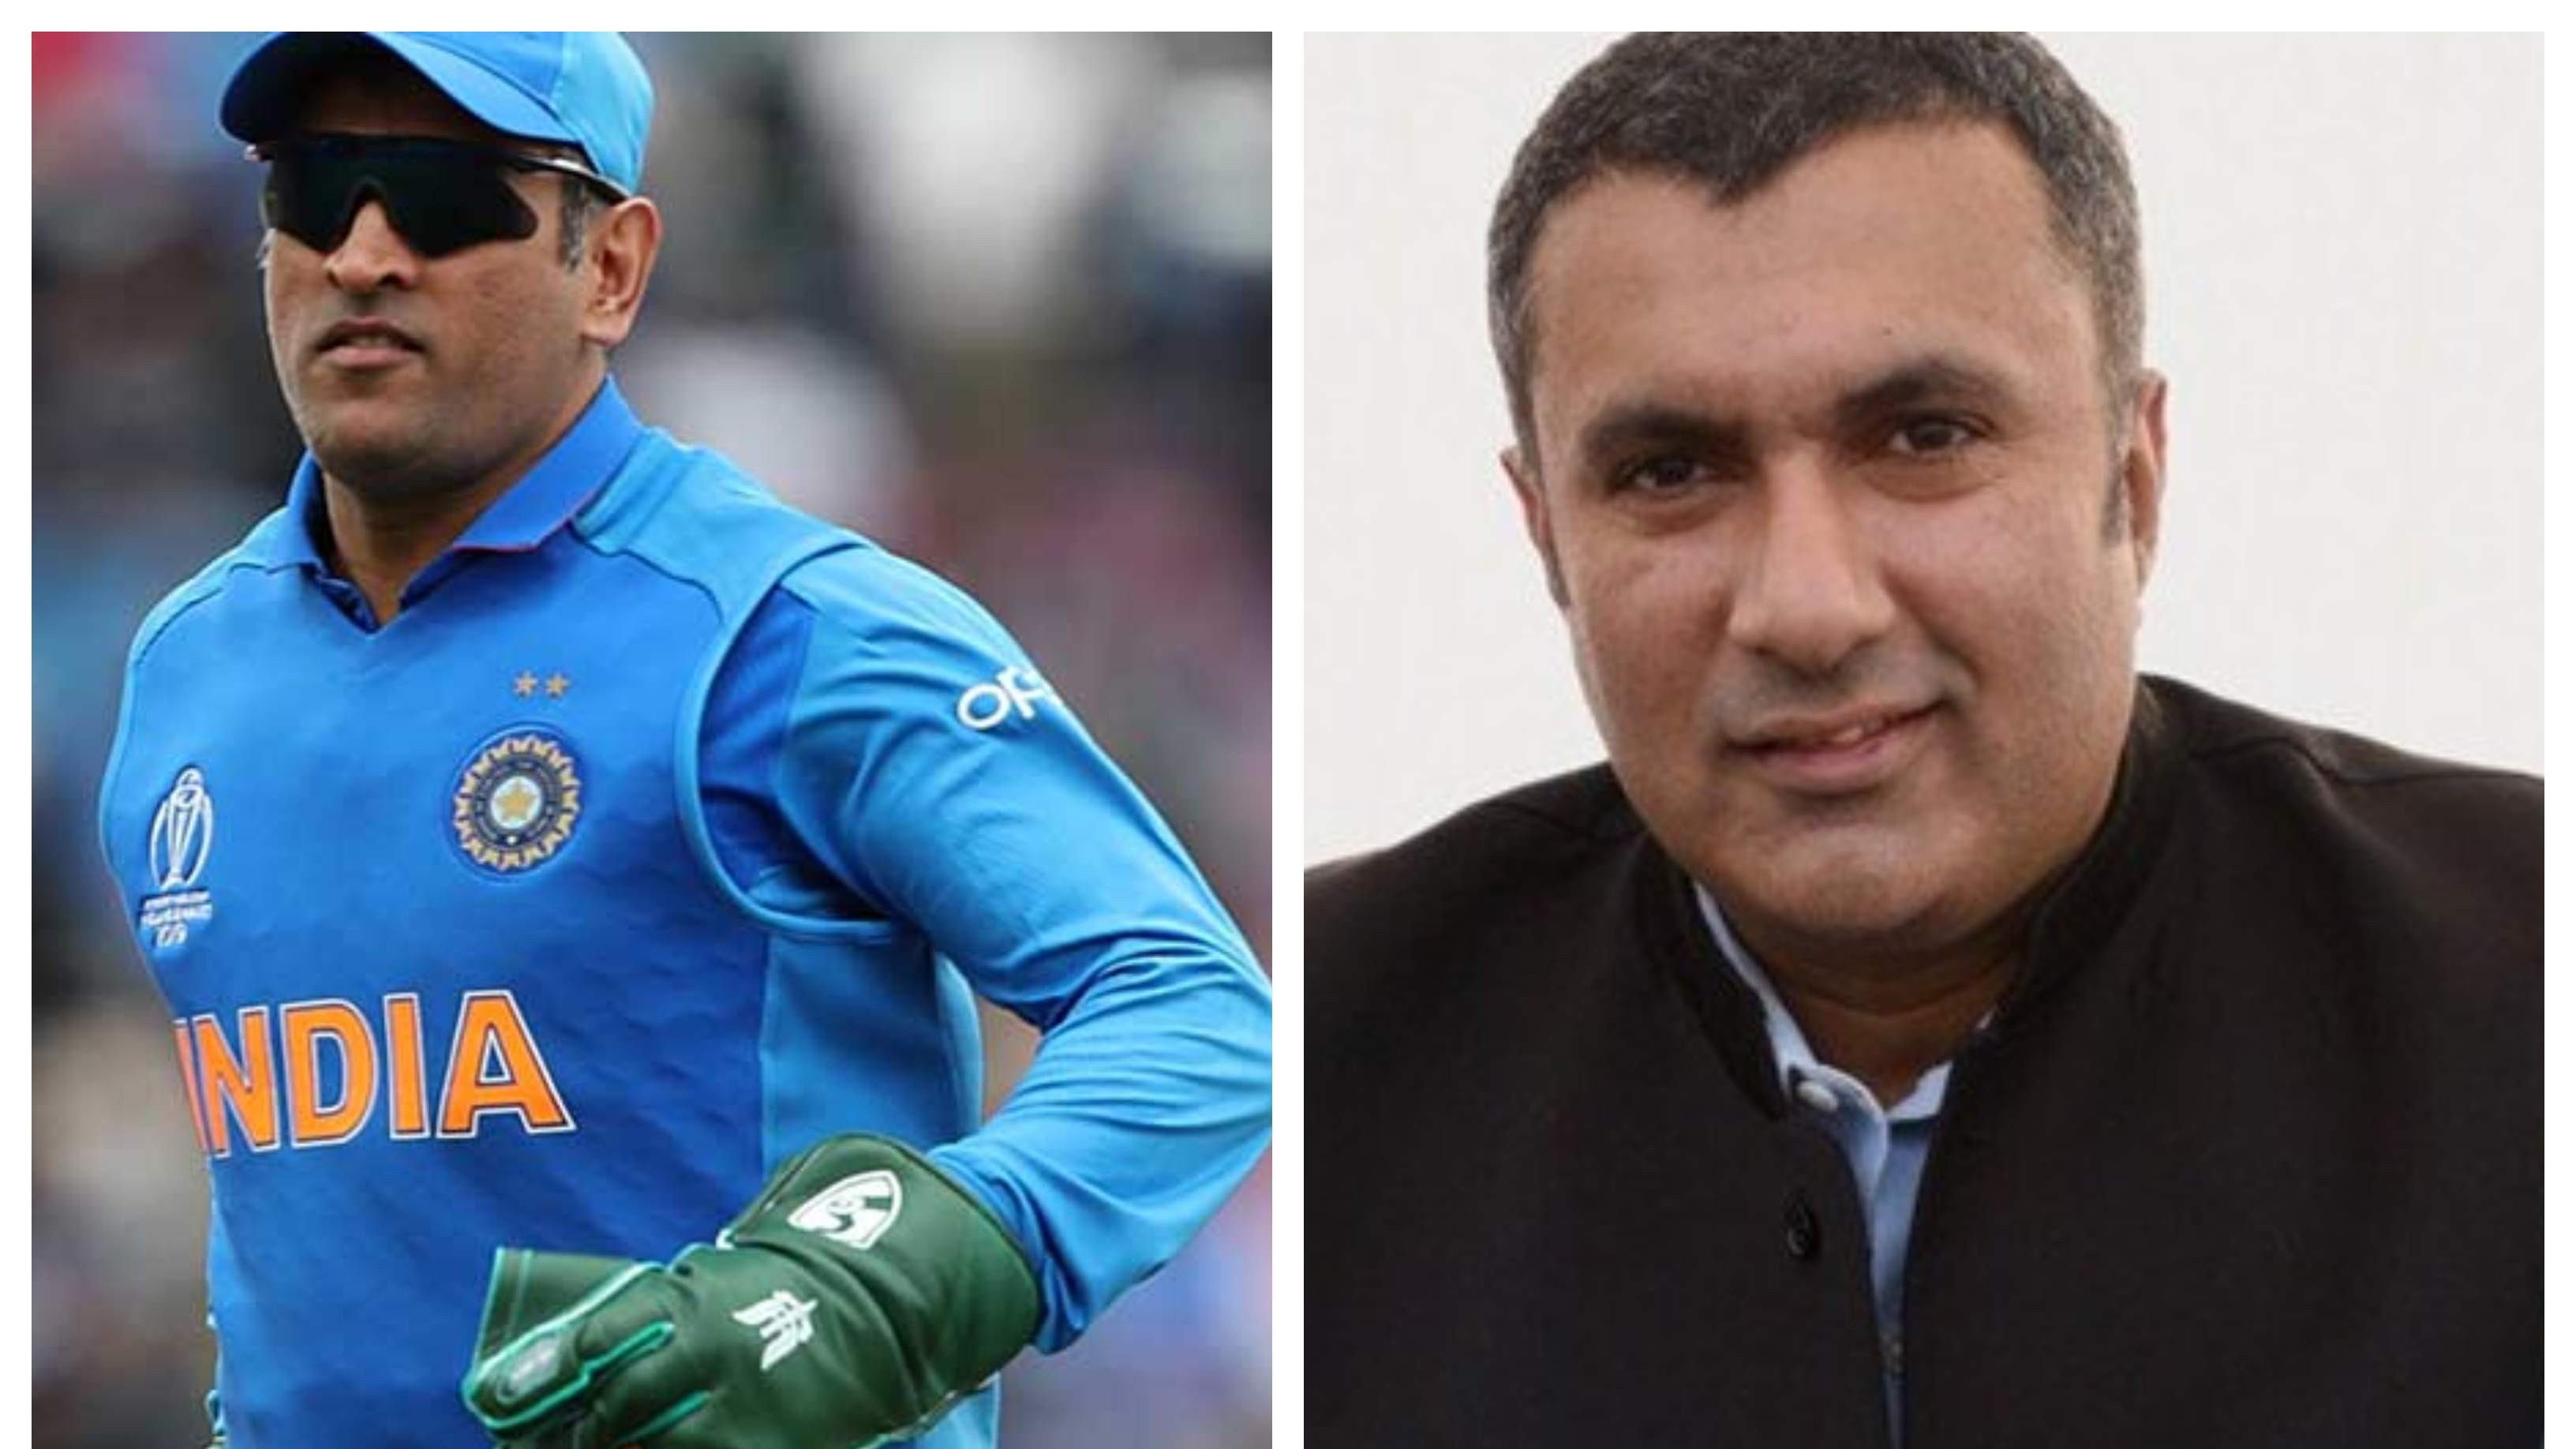 Dhoni is India's best wicketkeeper; I would have him in the team: BCCI treasurer